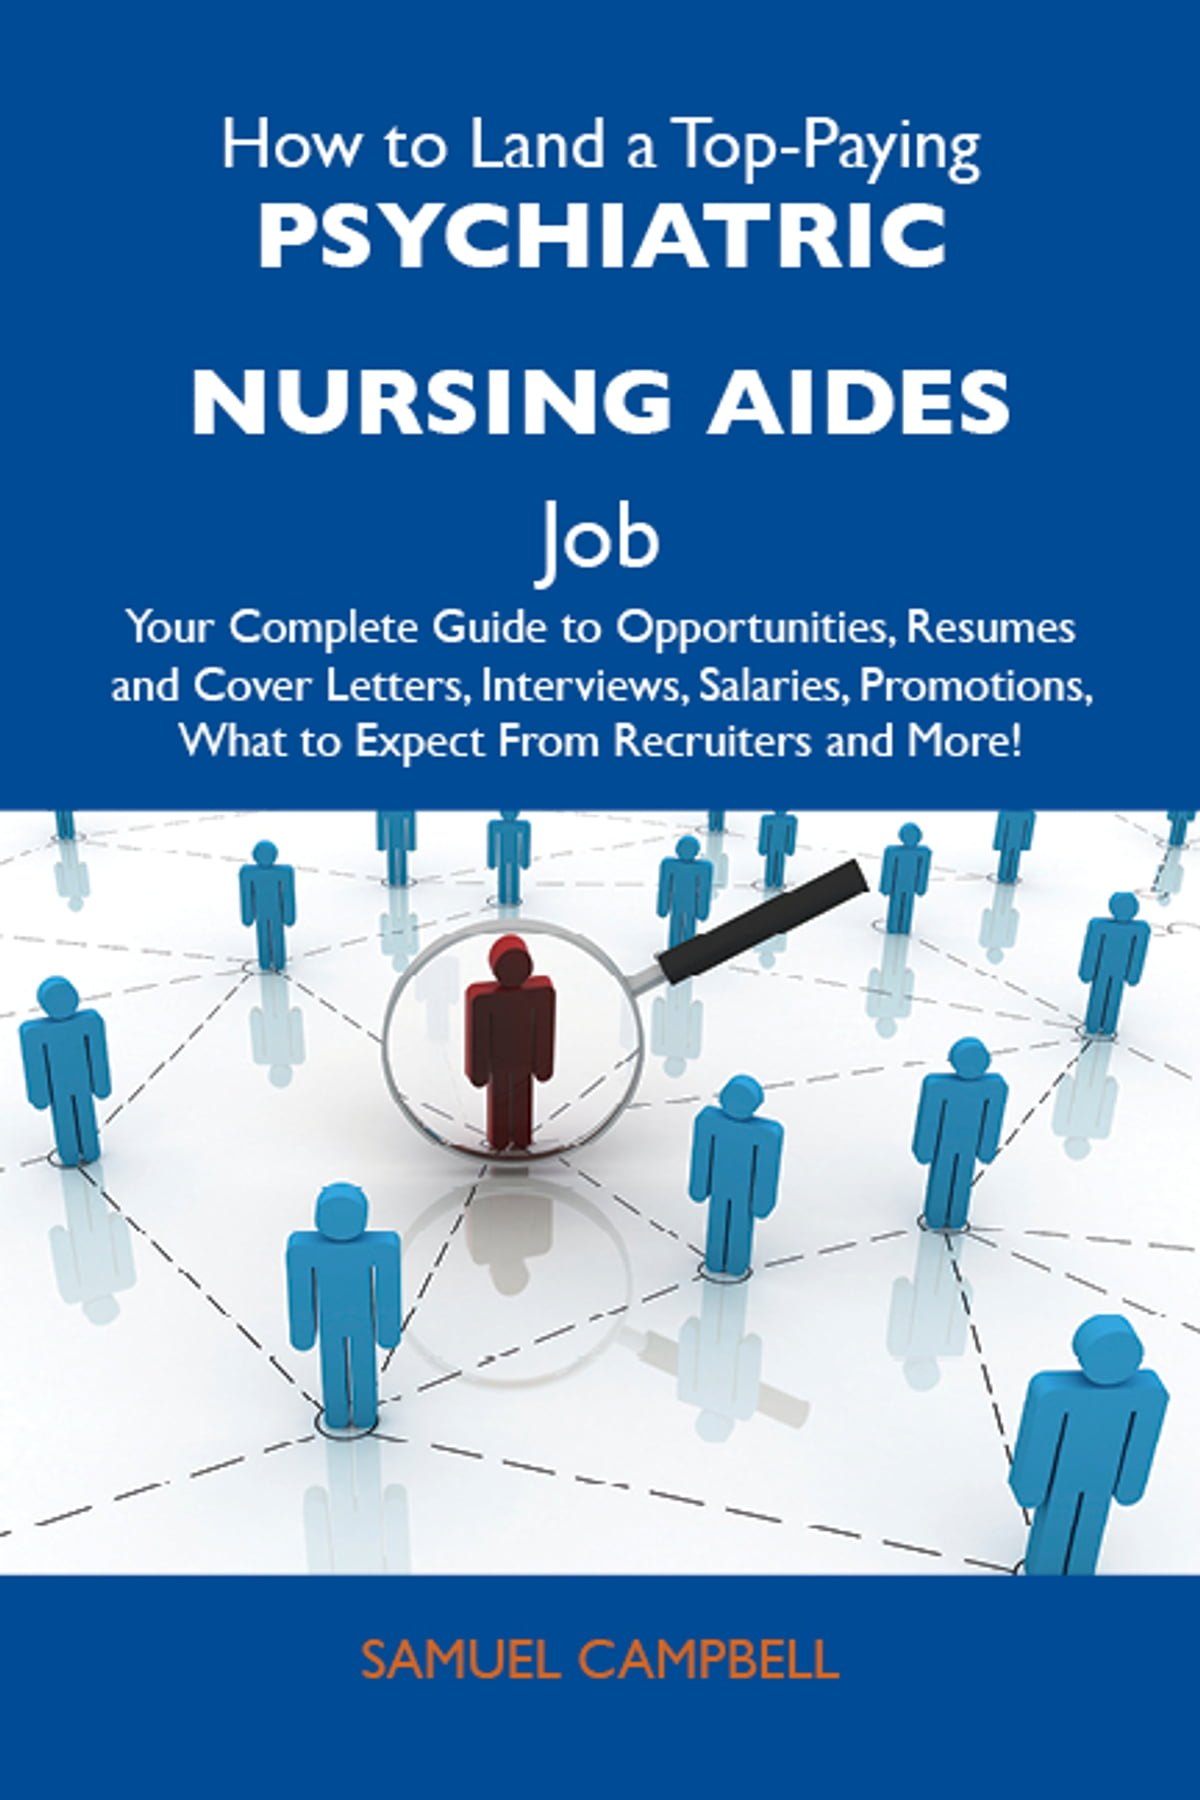 How to Land a Top-Paying Psychiatric nursing aides Job: Your Complete Guide  to Opportunities, Resumes and Cover Letters, Interviews, Salaries, ...